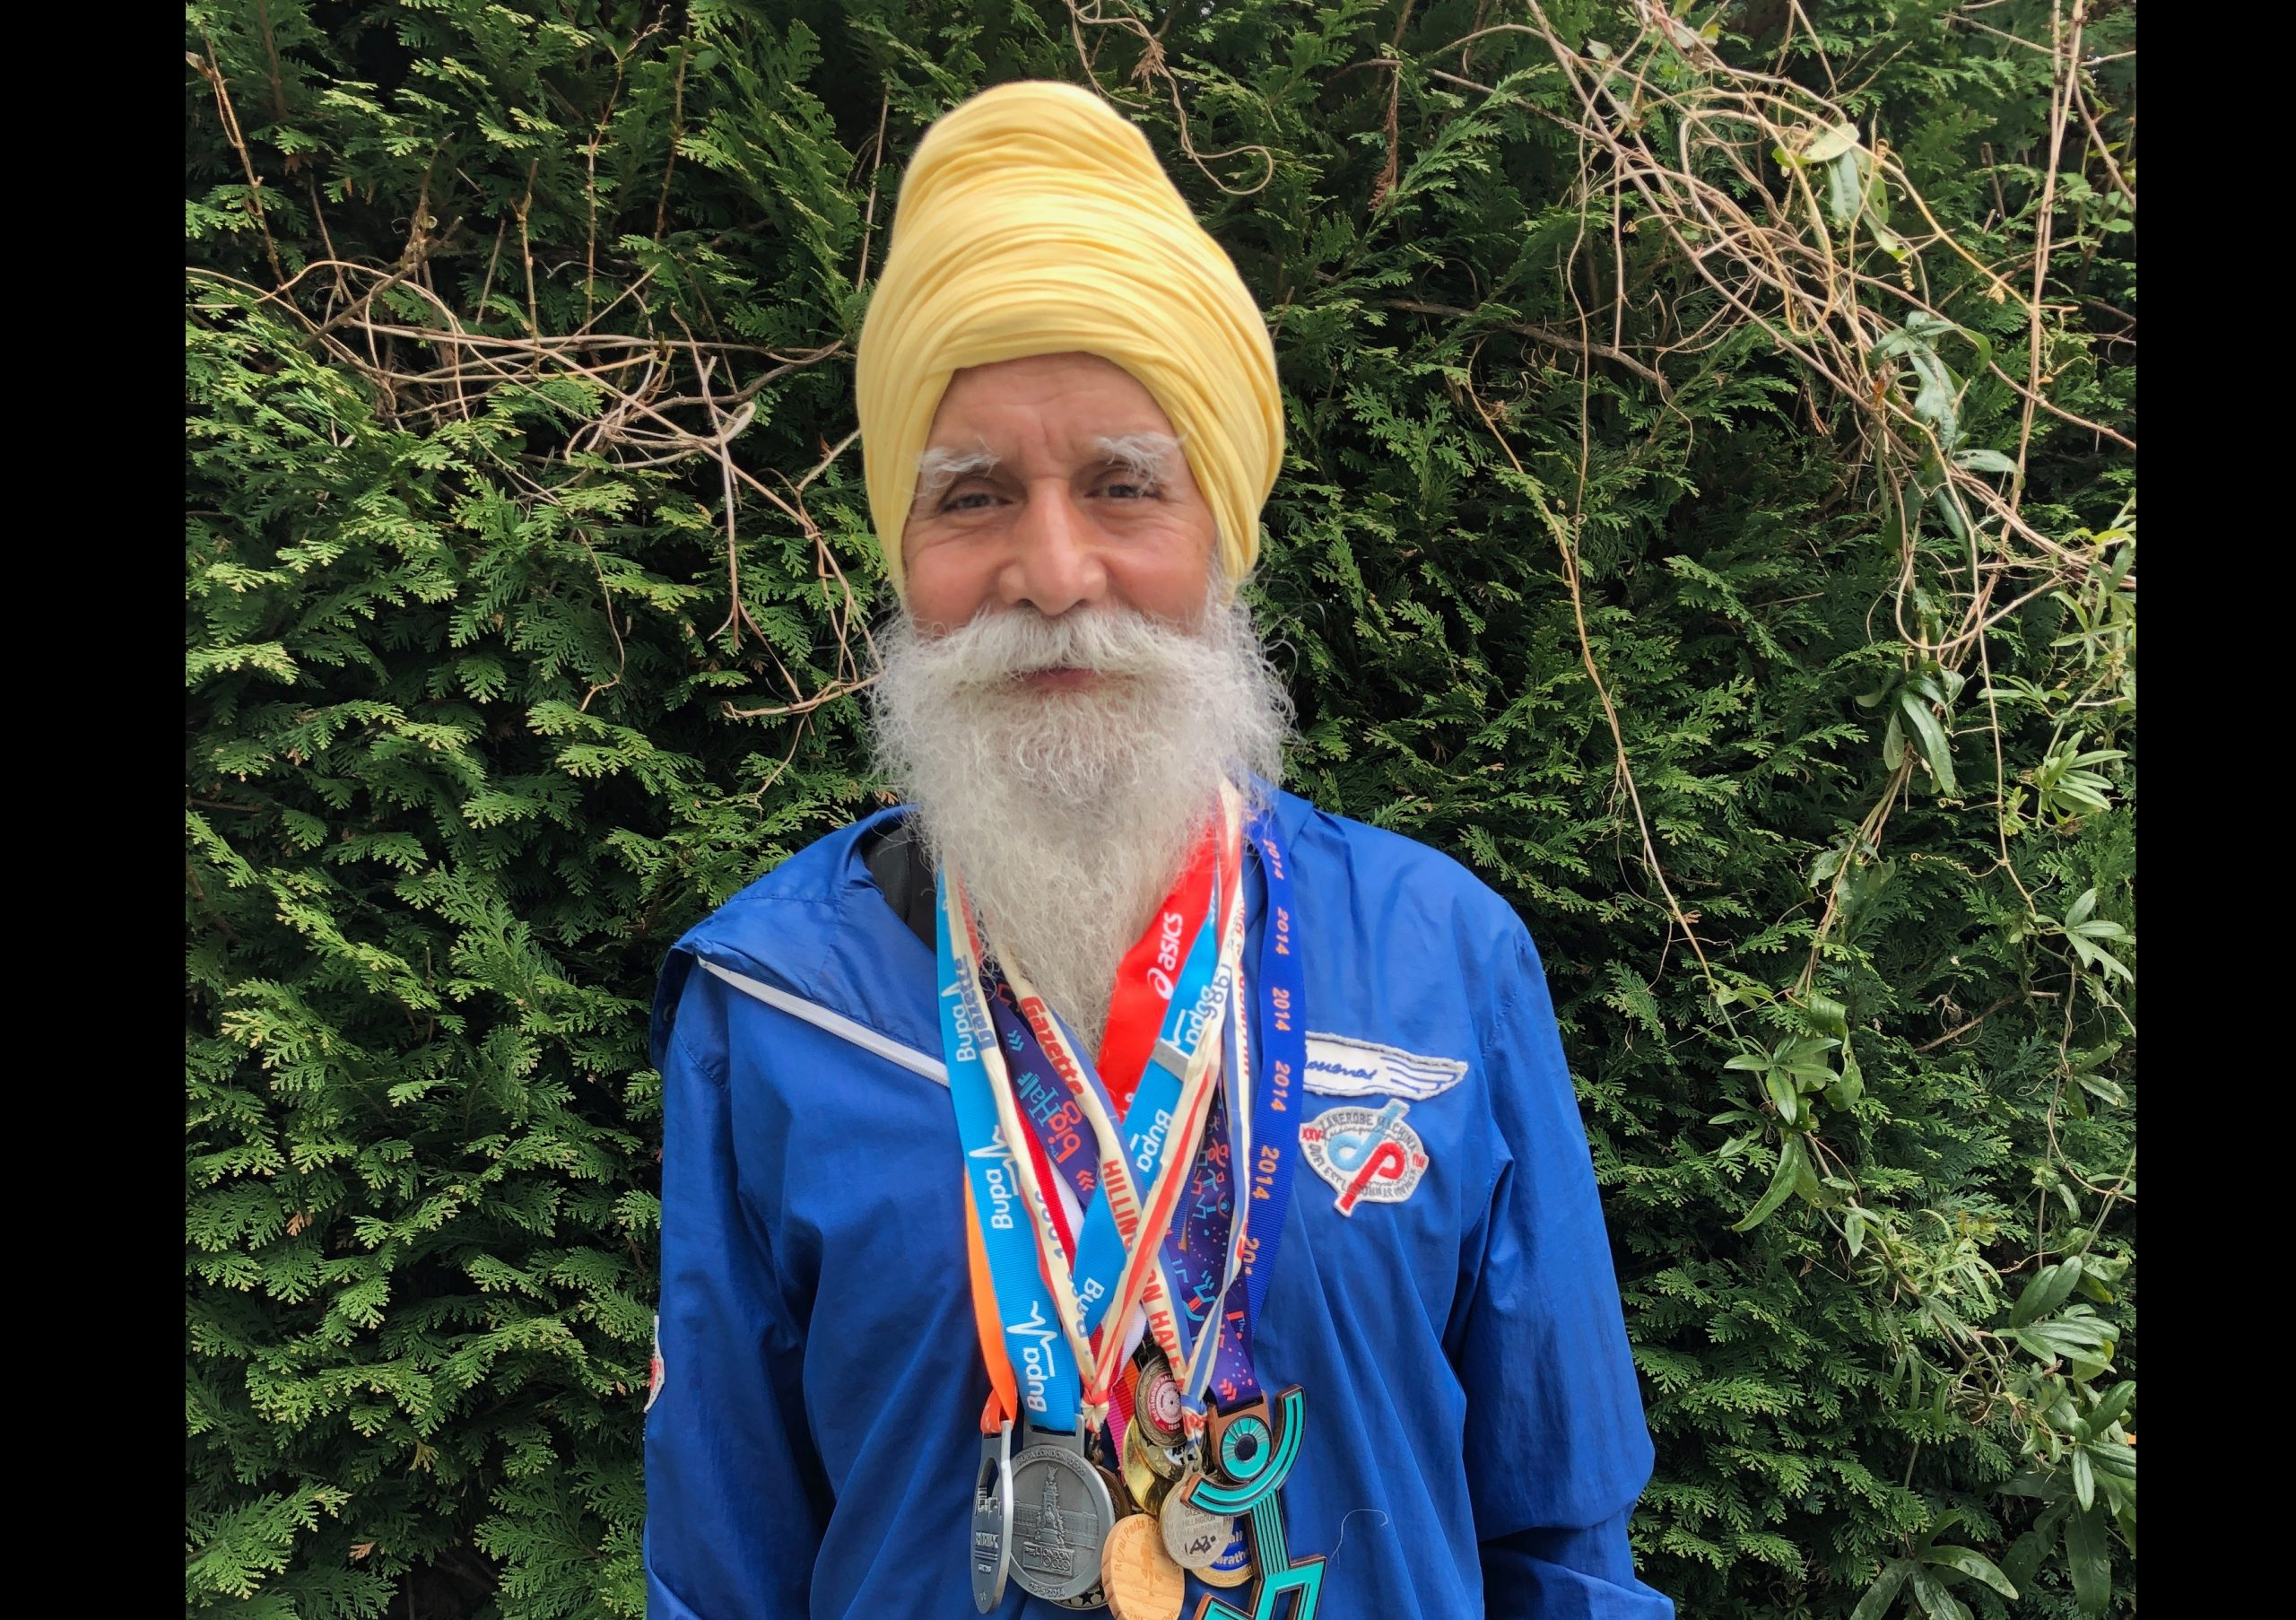 INSPIRATION: Rajinder Singh has raised more than £9,000 for NHS charities